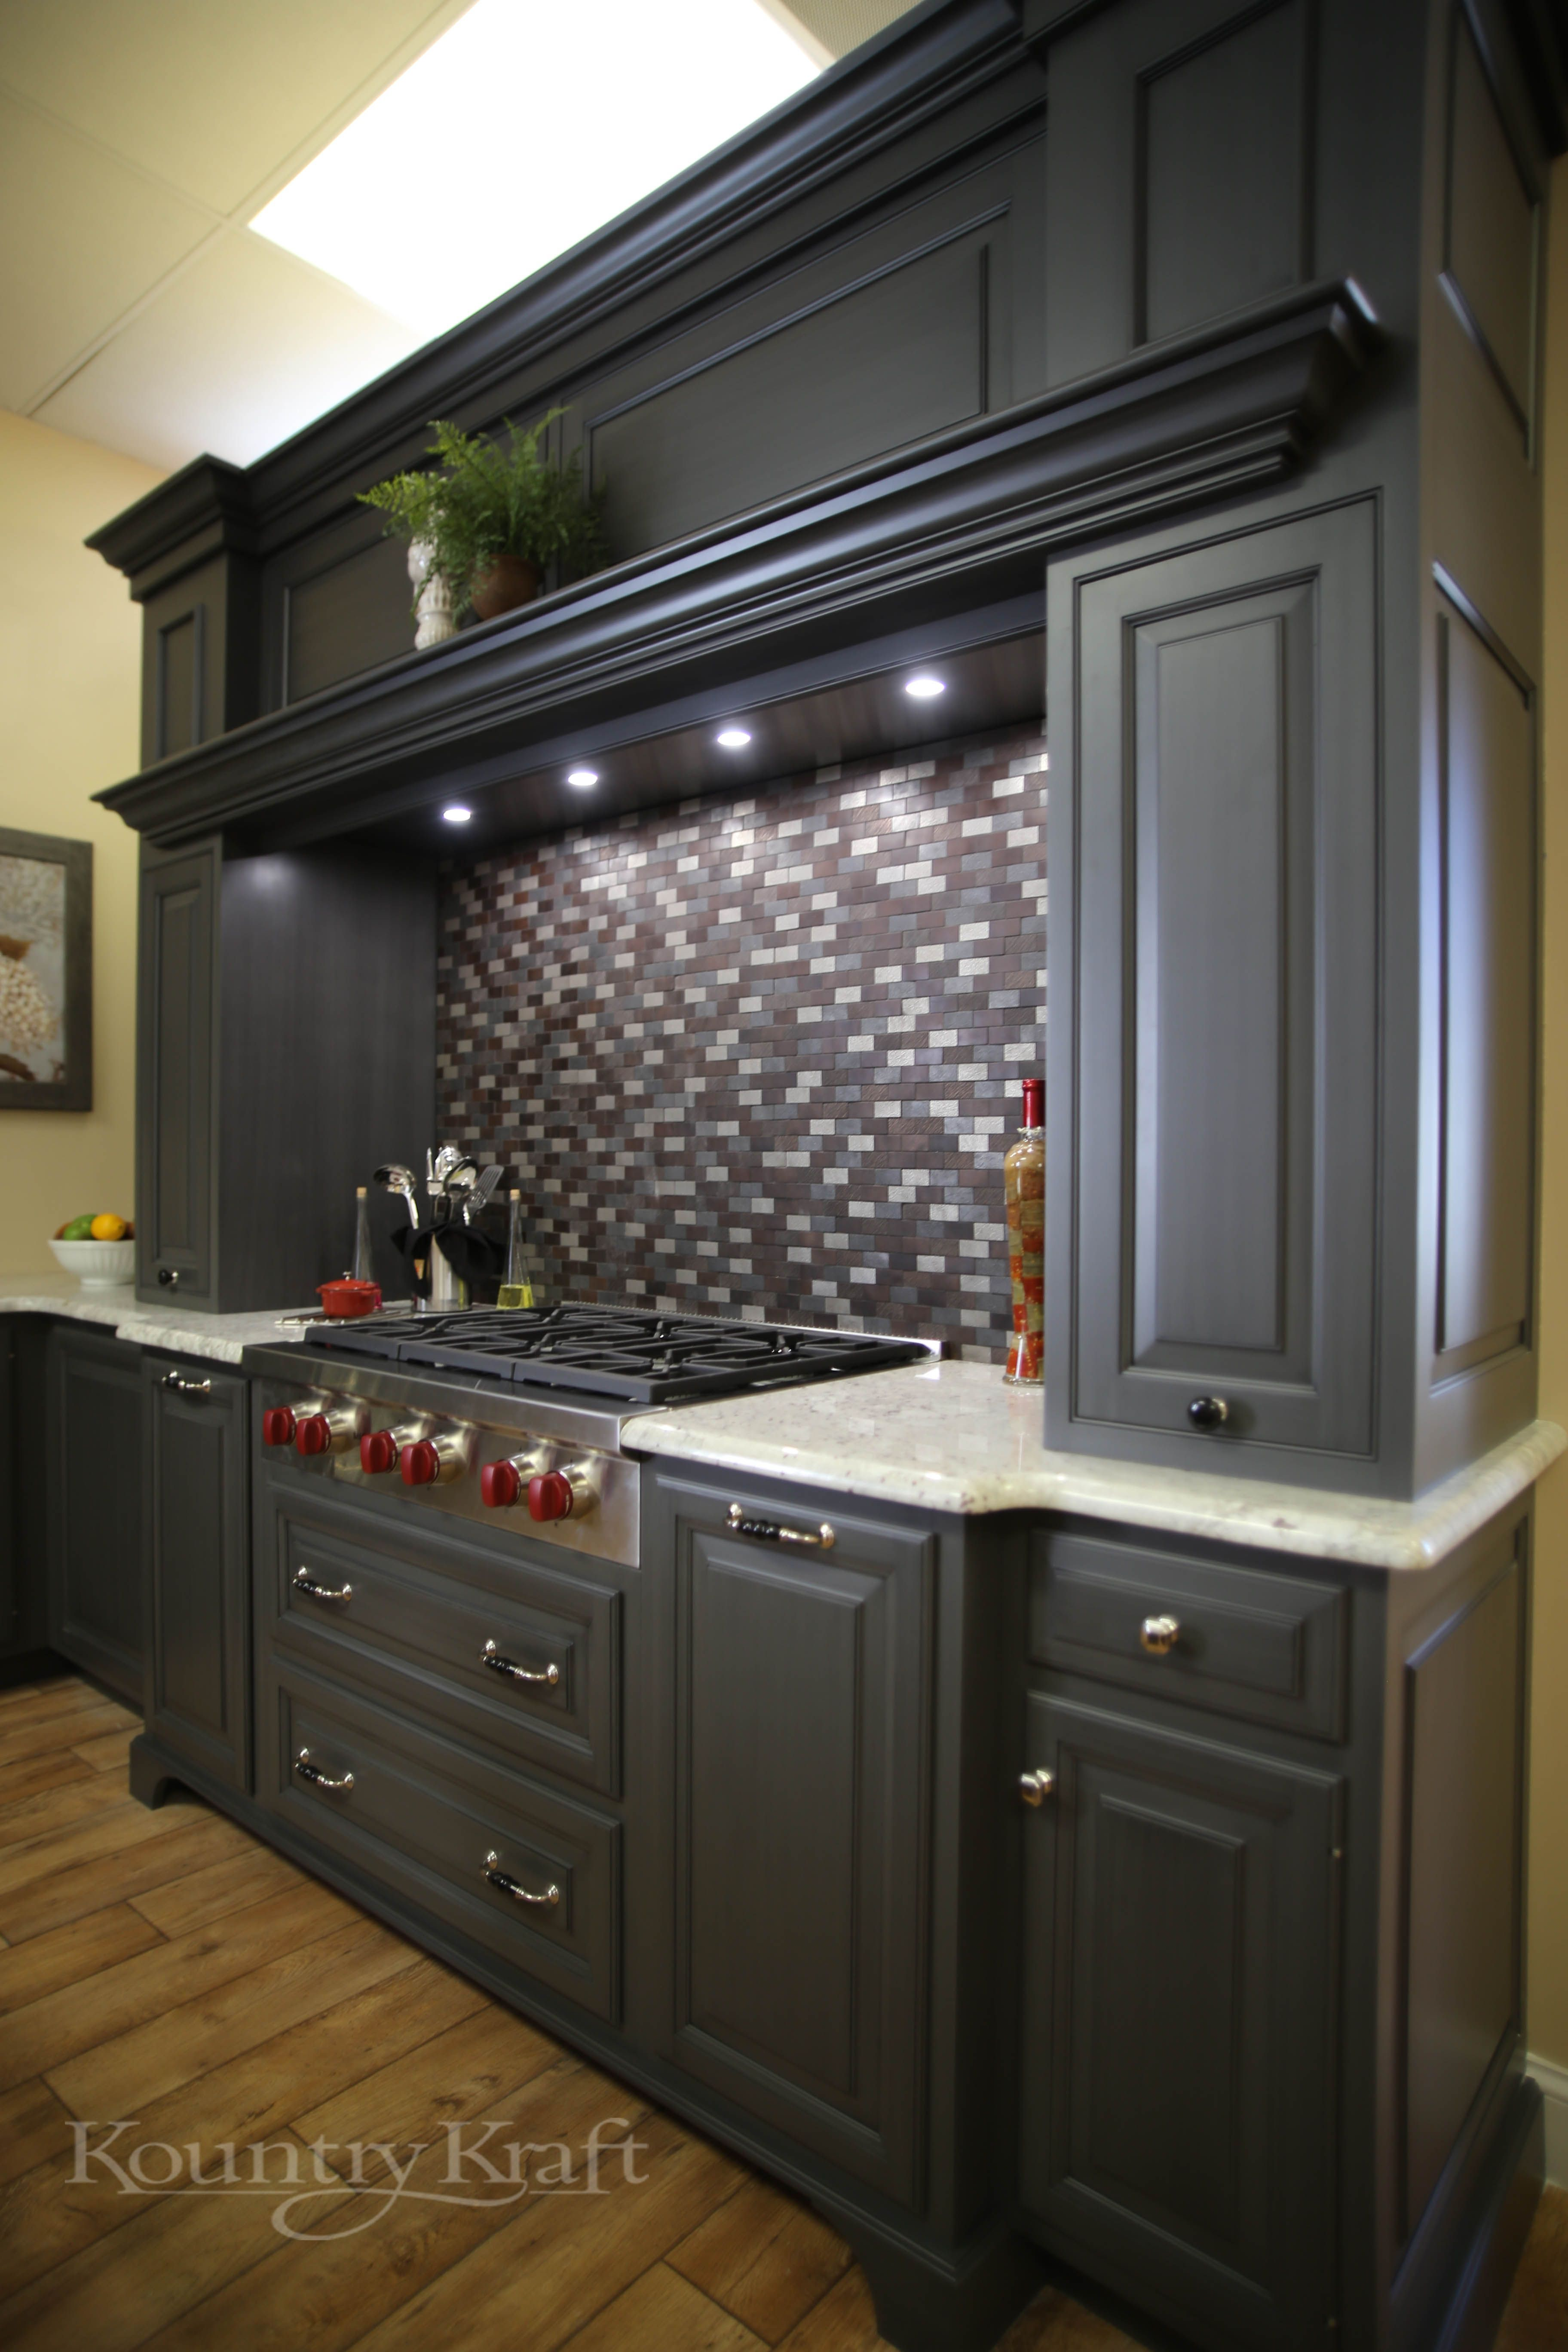 Custom Kitchen Cabinets Designed By Mike Hinkle Of In Birdsboro Pa This Transitional Style Has Perimeter That Are